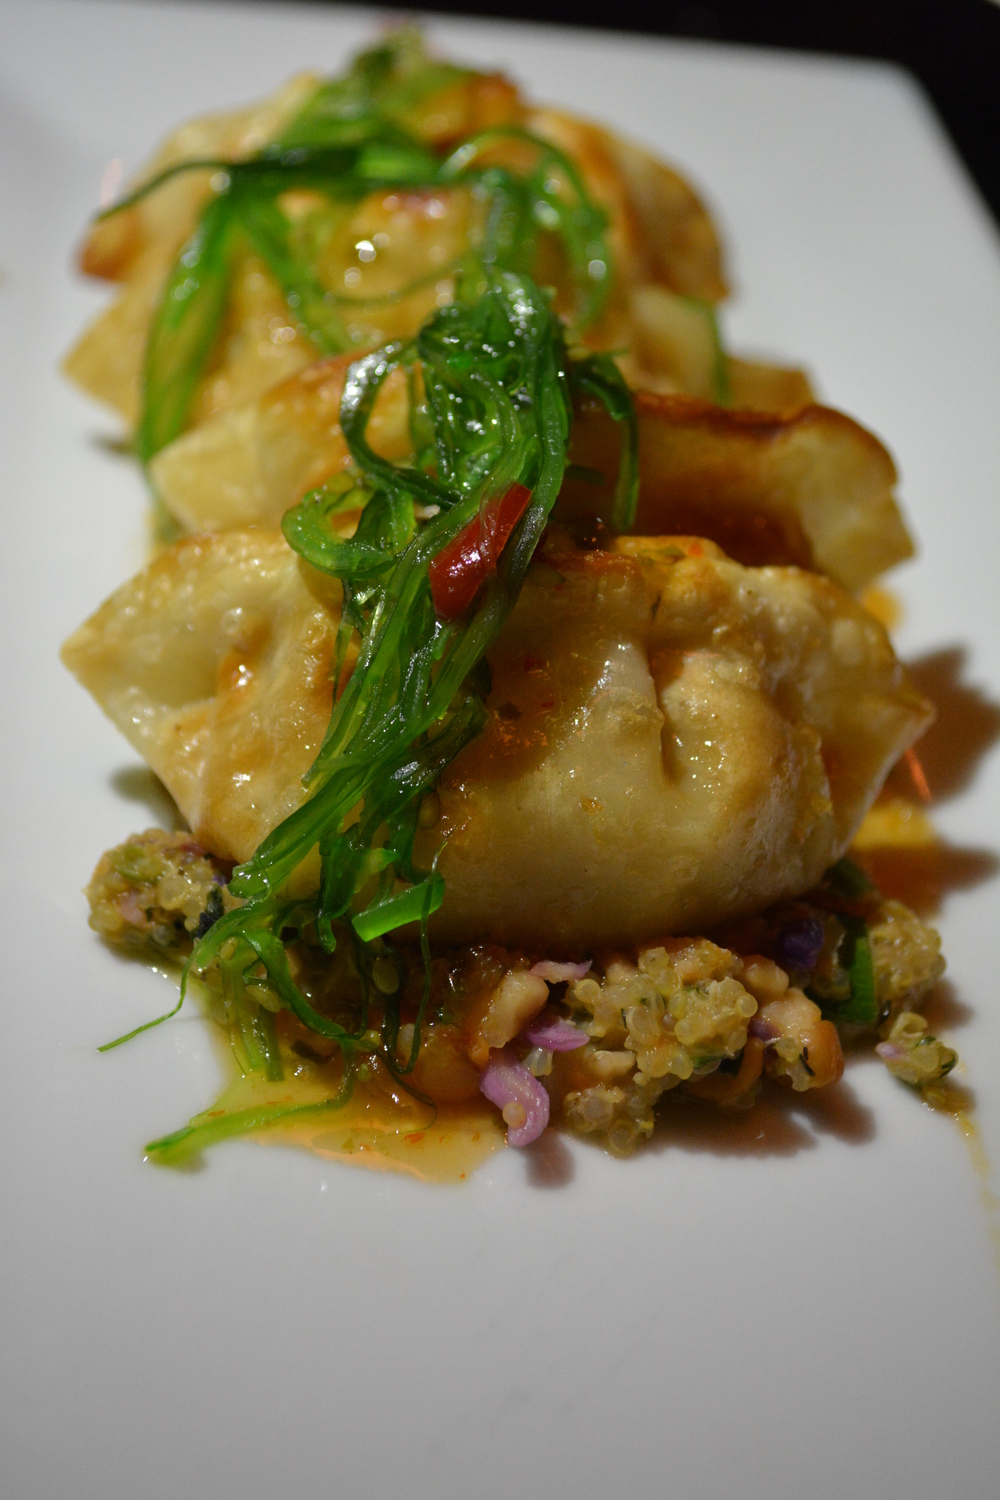 The Pan Crisped Teriyaki Chicken Dumplings, mentioned above.